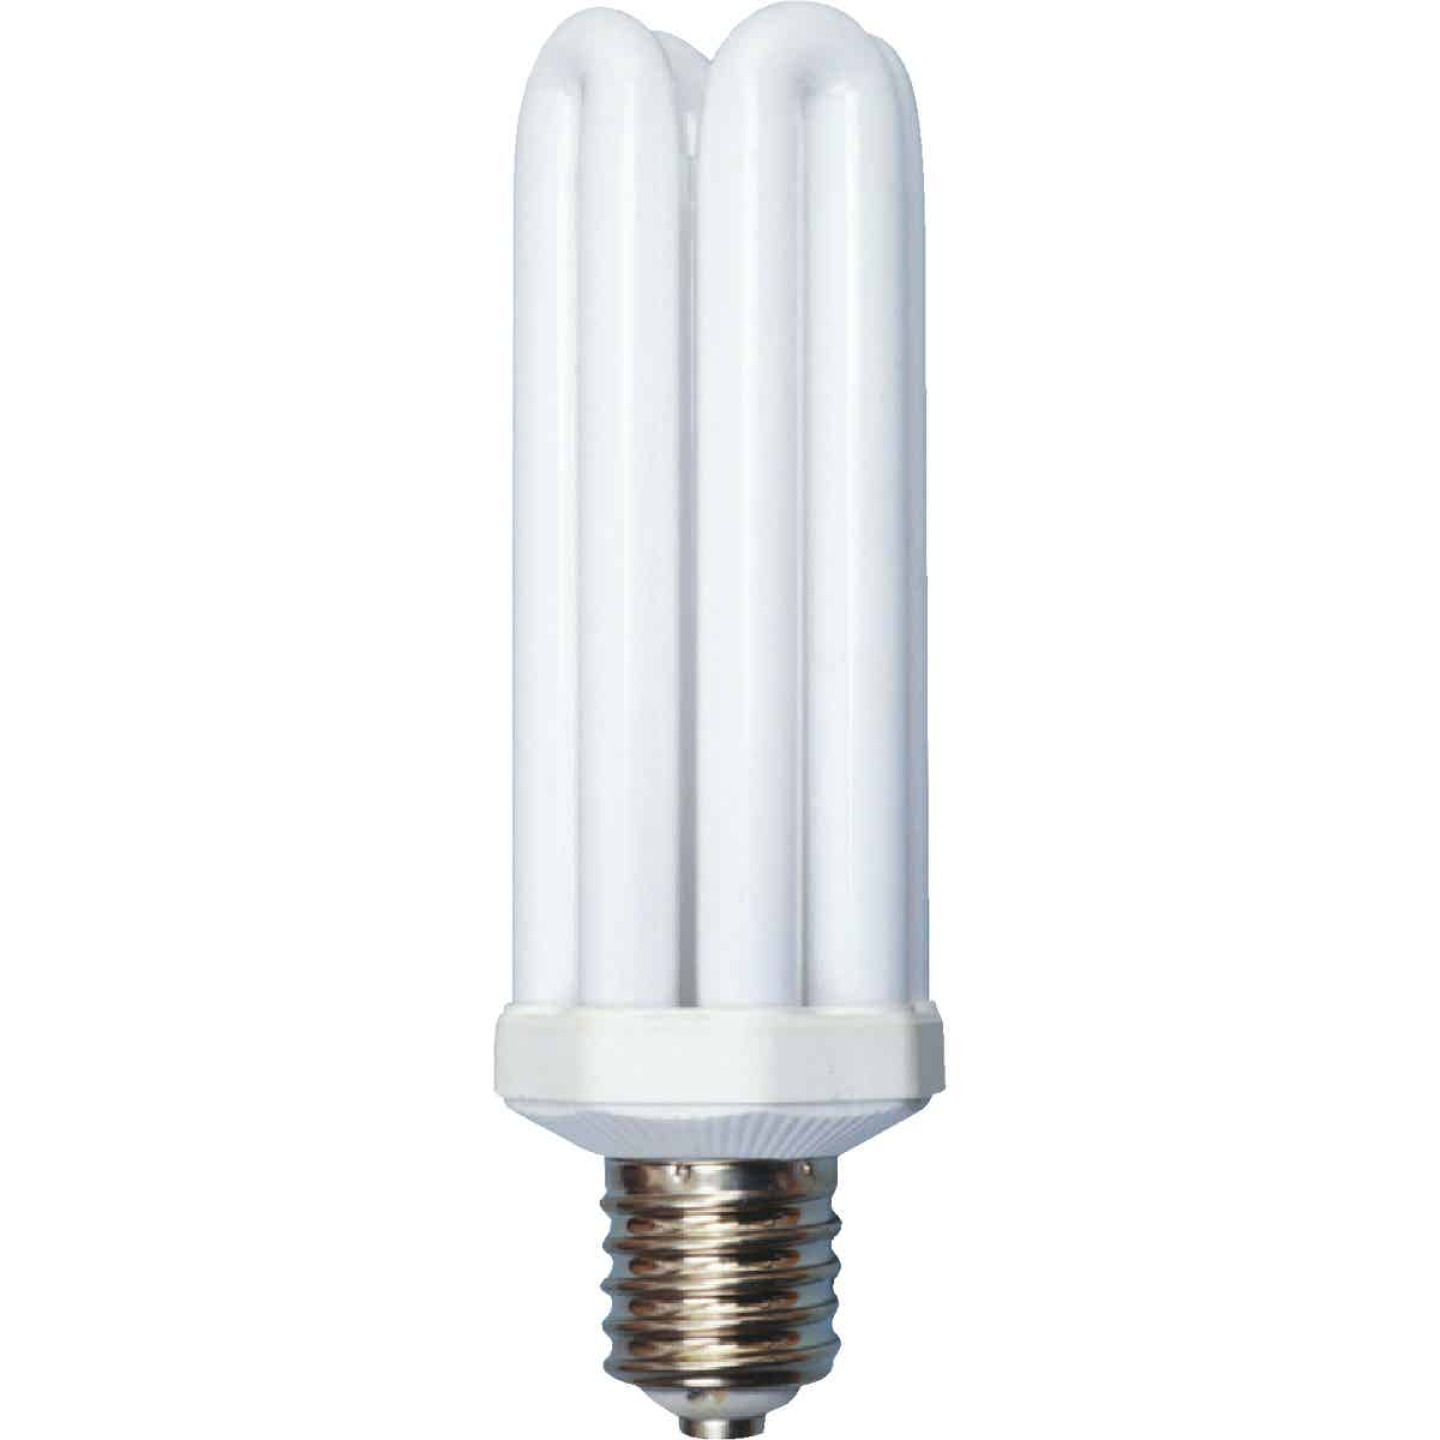 Woods 300W Equivalent Daylight Mogul Base 4U Security Fixture Replacement CFL Light Bulb Image 1